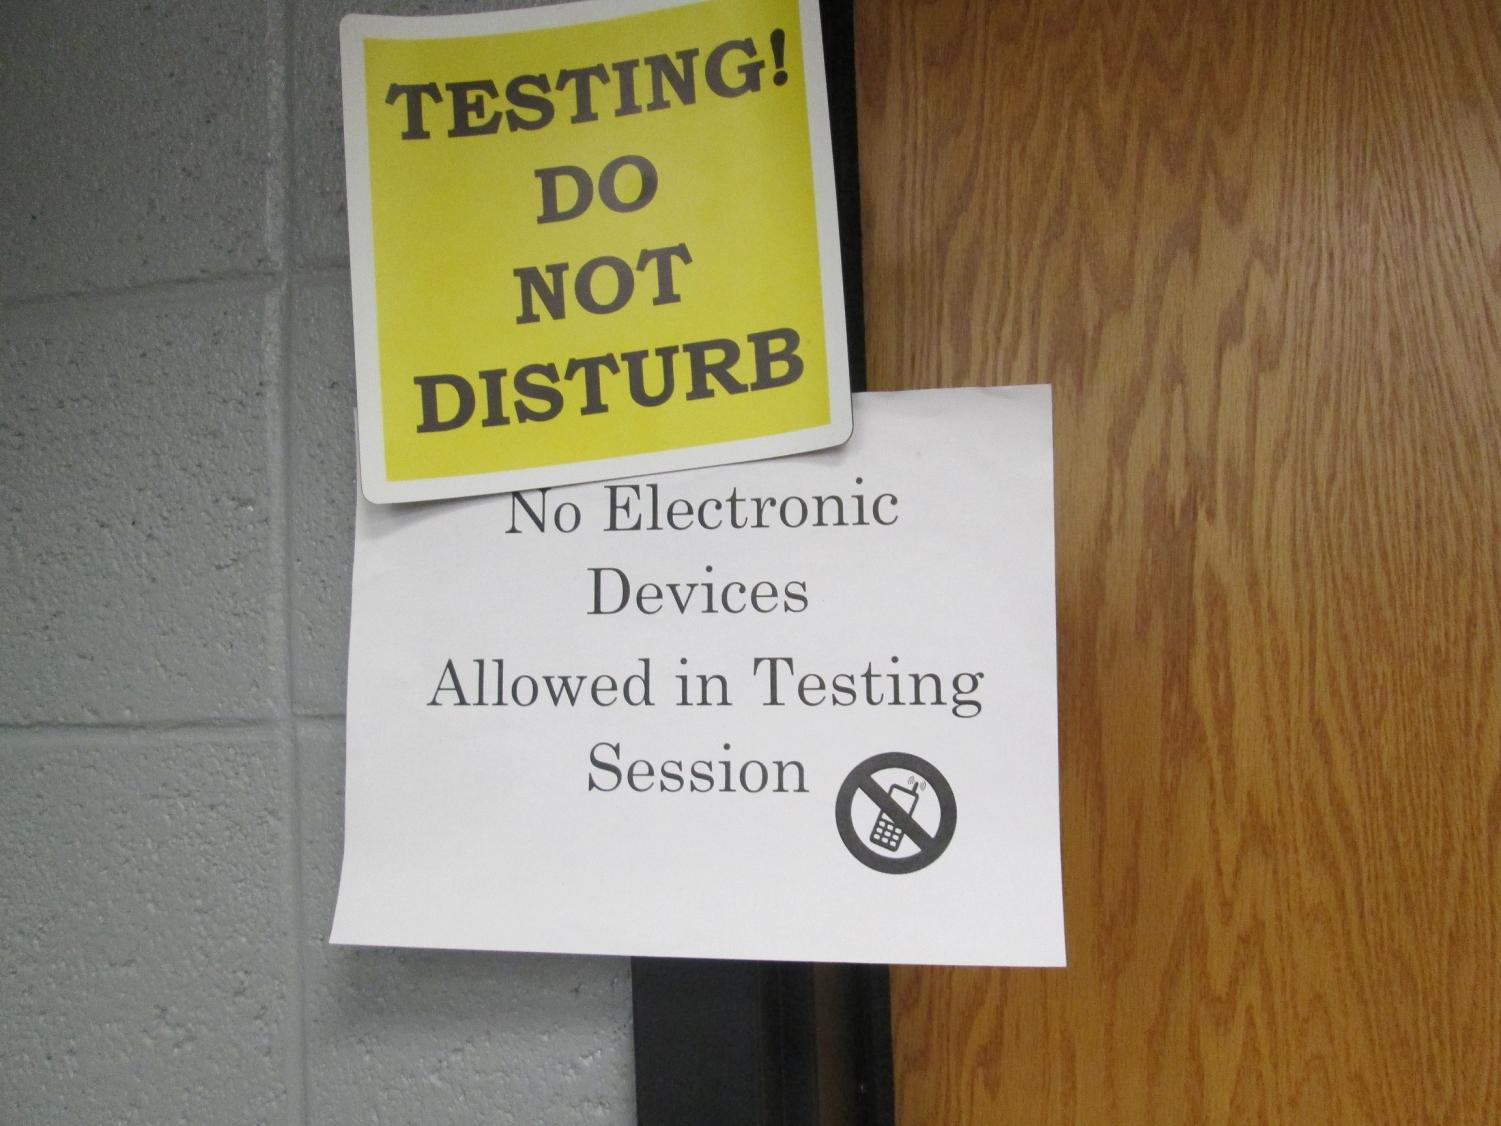 The purpose of the photo is to depict the testing room and the signs that are scattered around the schools as the event is going on. The color resembles caution, and the bold print signifies that there will be consequences if the rules are not followed adequately.